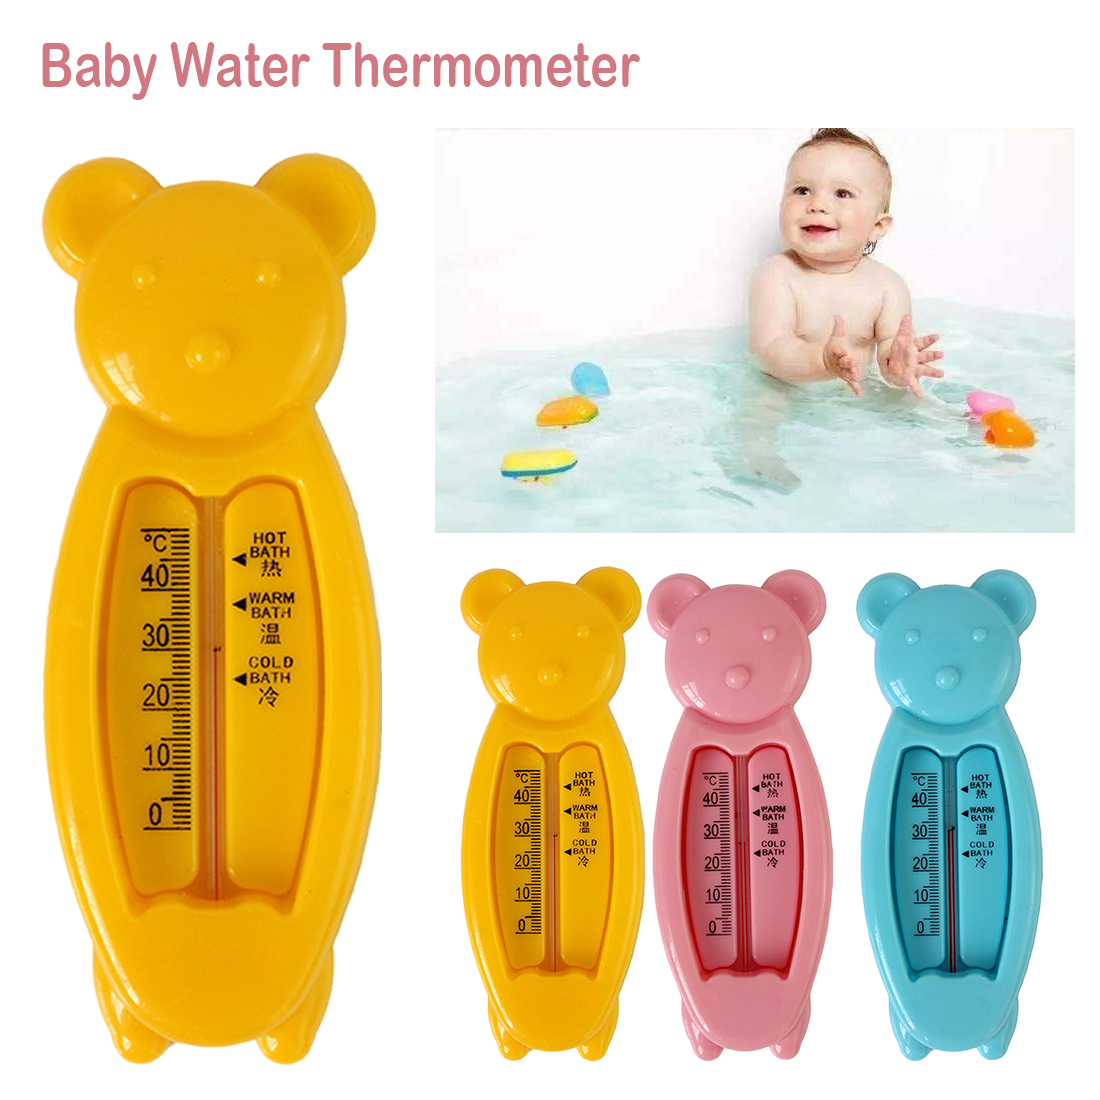 Floating Bear Baby Water Thermometer Kid Bath Thermometer Toy Infant Toddler Plastic Tub Water Sensor ThermometerFloating Bear Baby Water Thermometer Kid Bath Thermometer Toy Infant Toddler Plastic Tub Water Sensor Thermometer